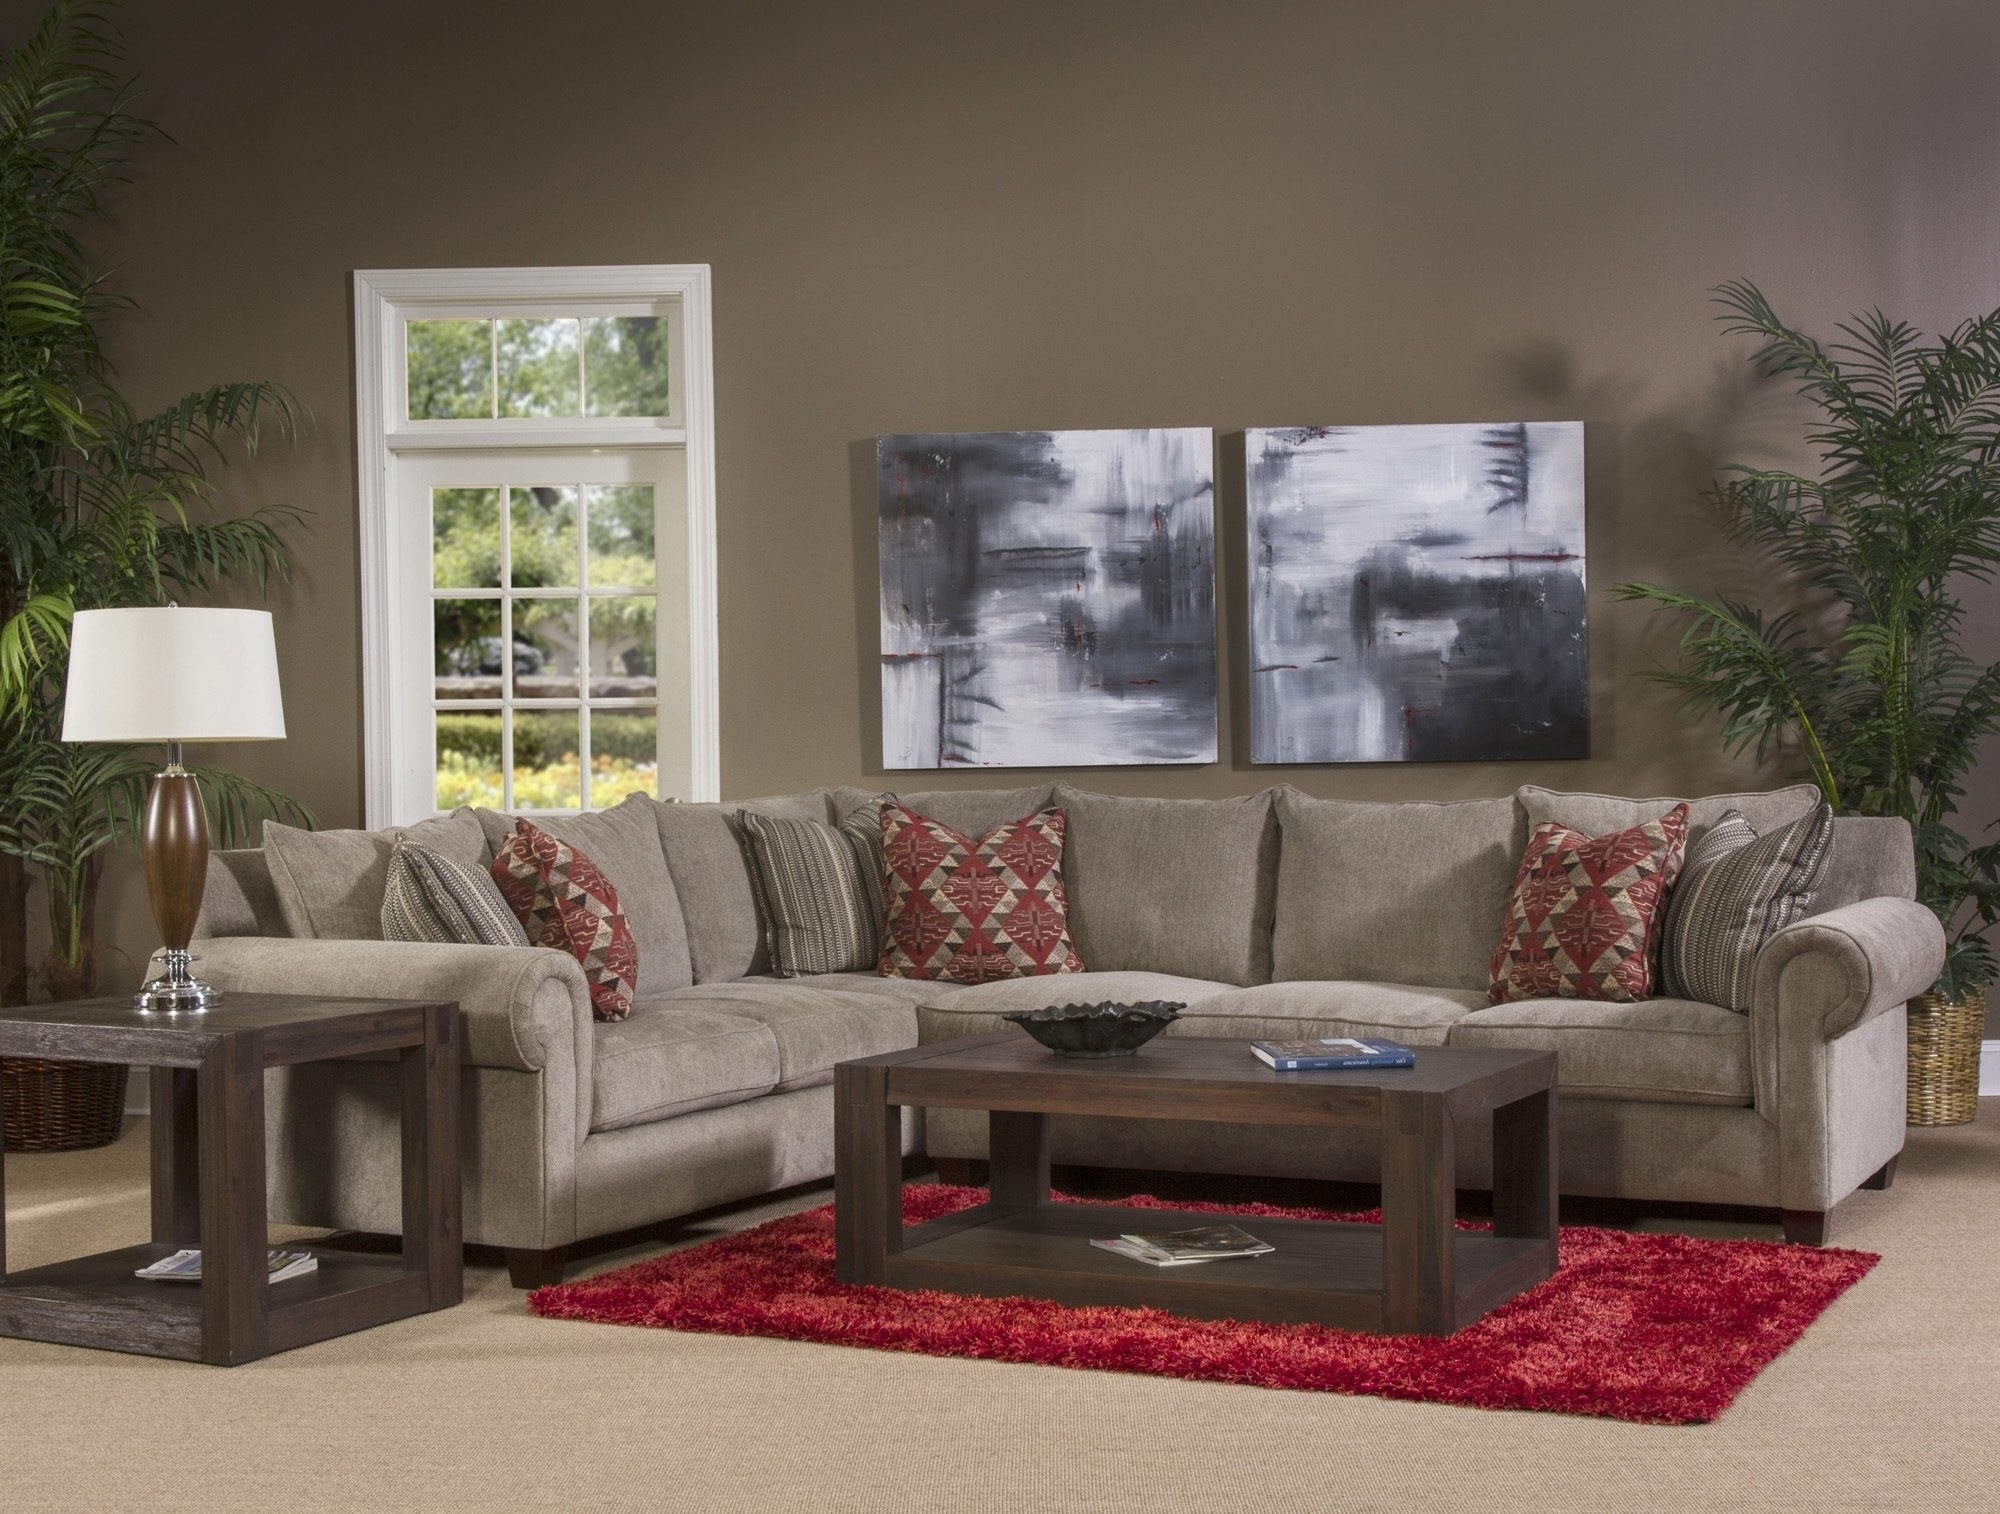 Most Current Down Feather Sectional Sofas In Low Profile Sectional Sofa Inspirational Down Feather Sectional (View 17 of 20)